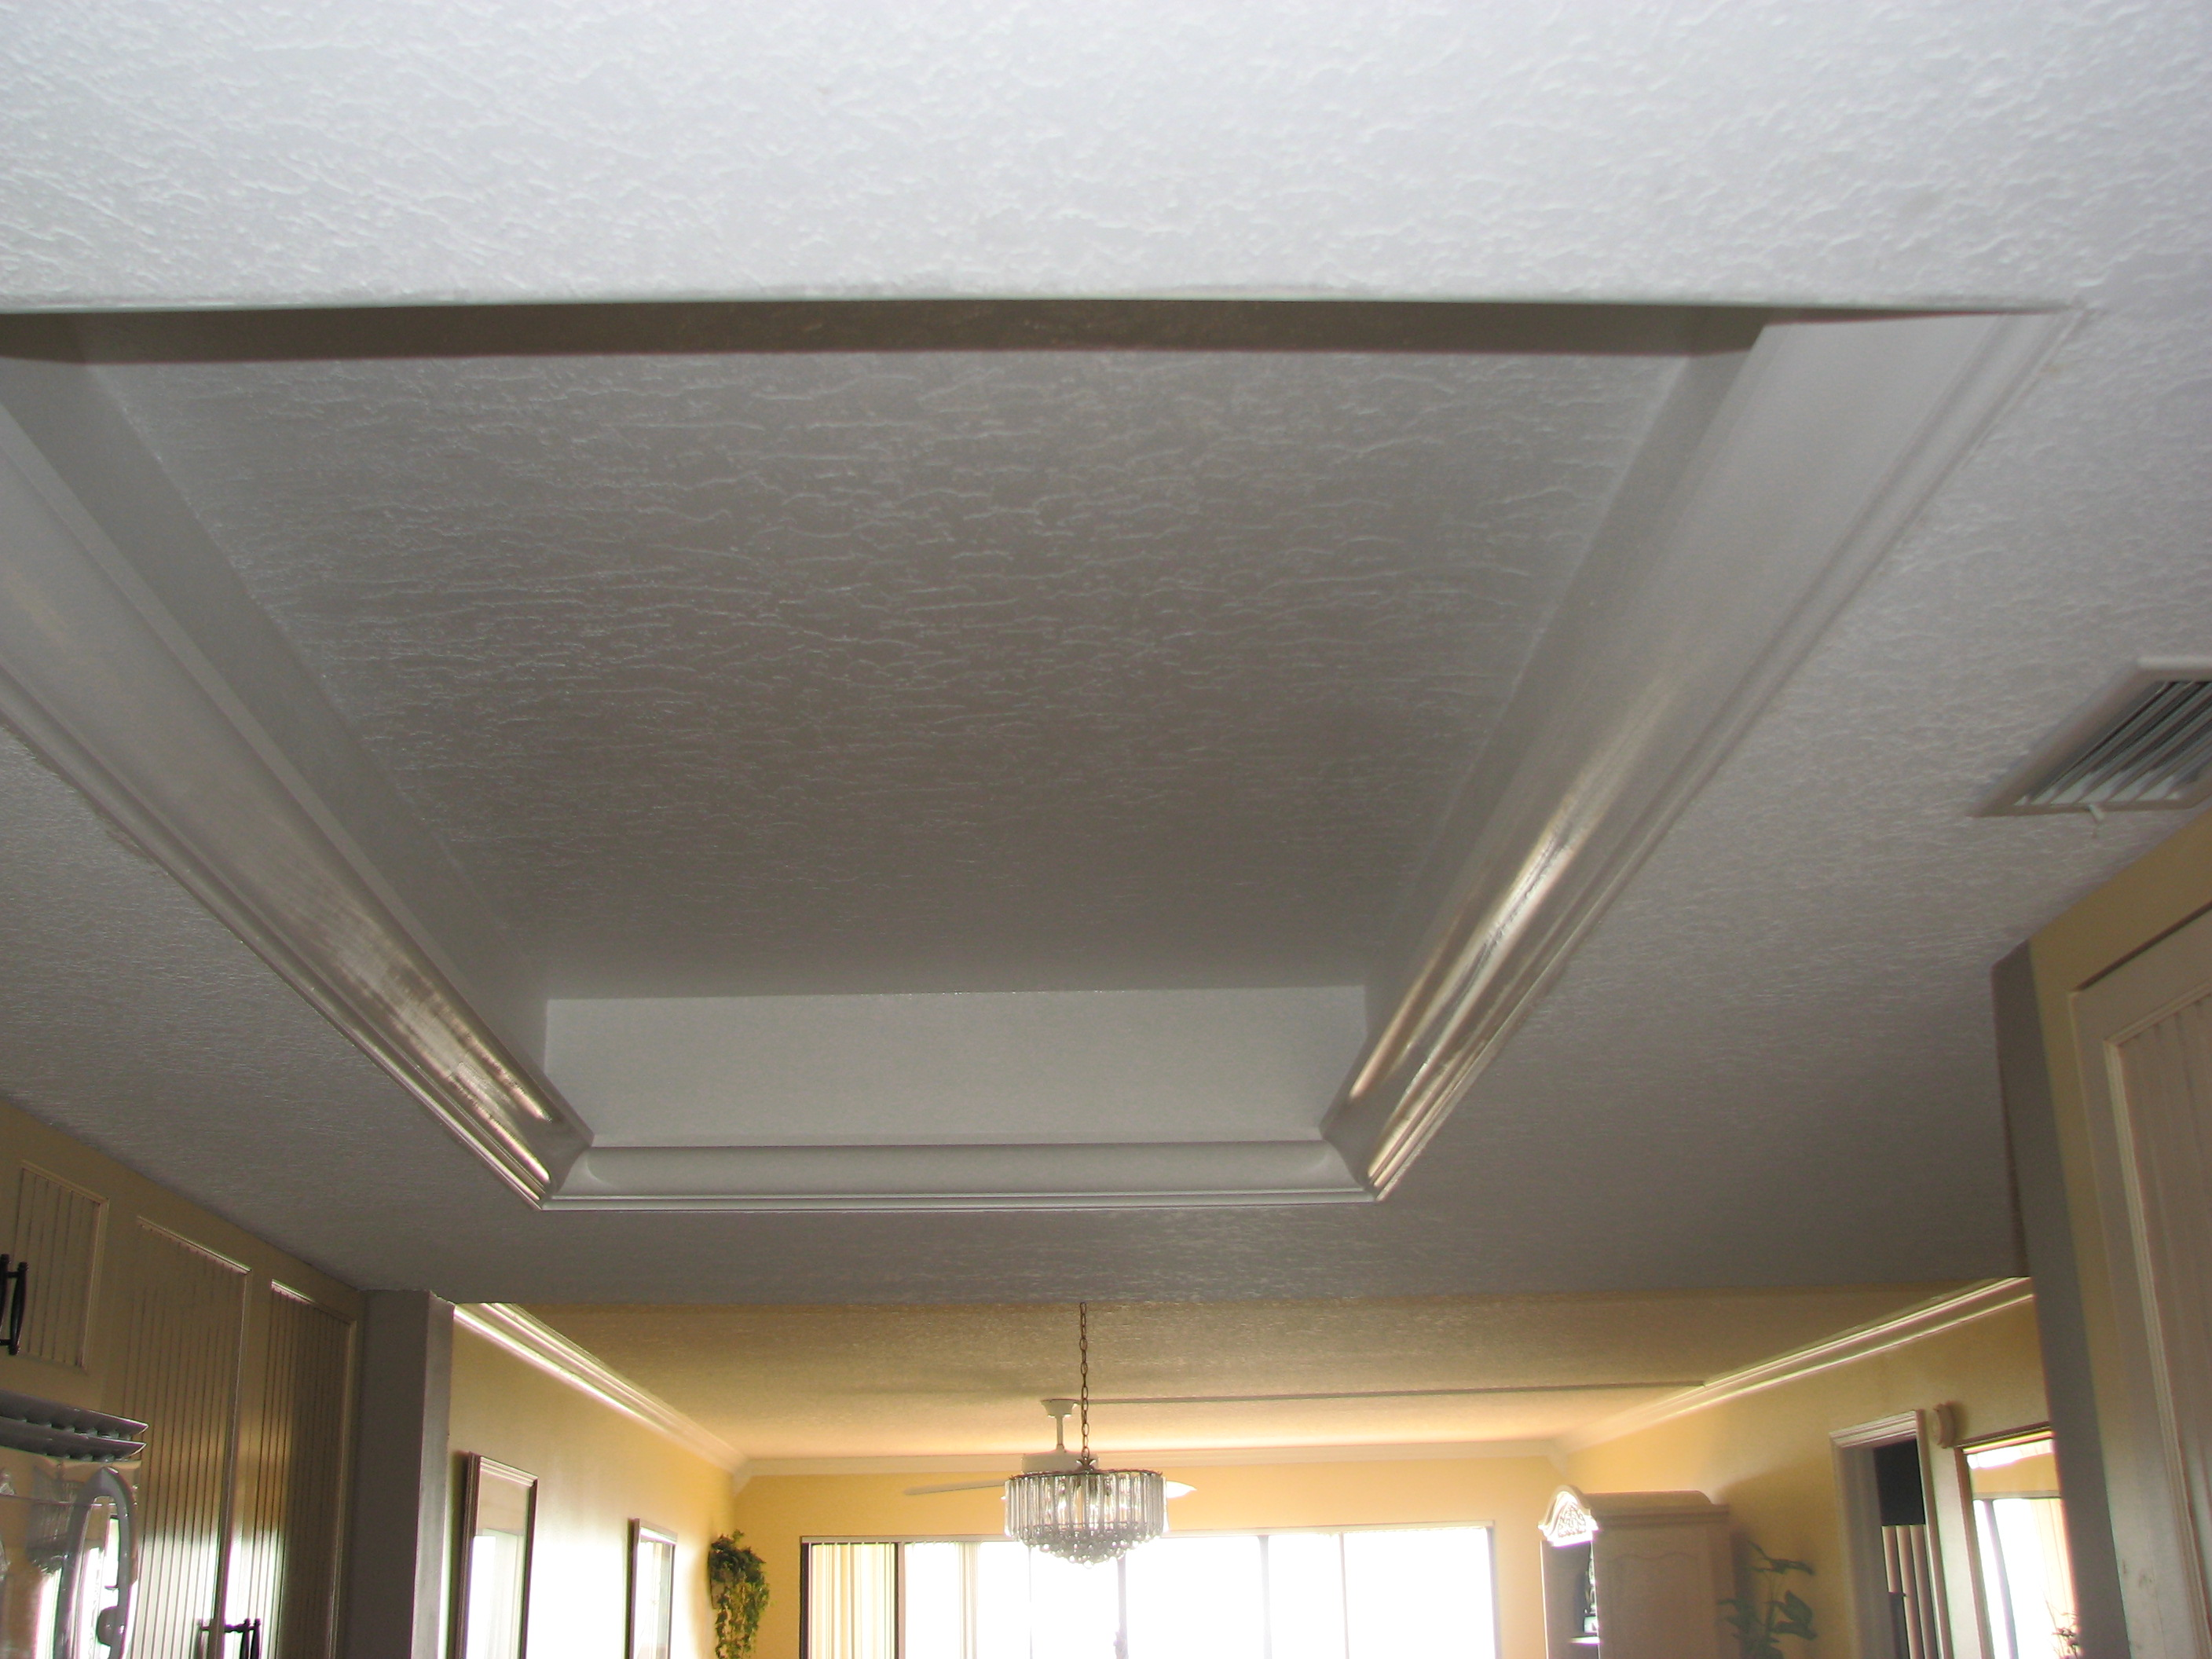 New Trey Ceiling Primed And Painted